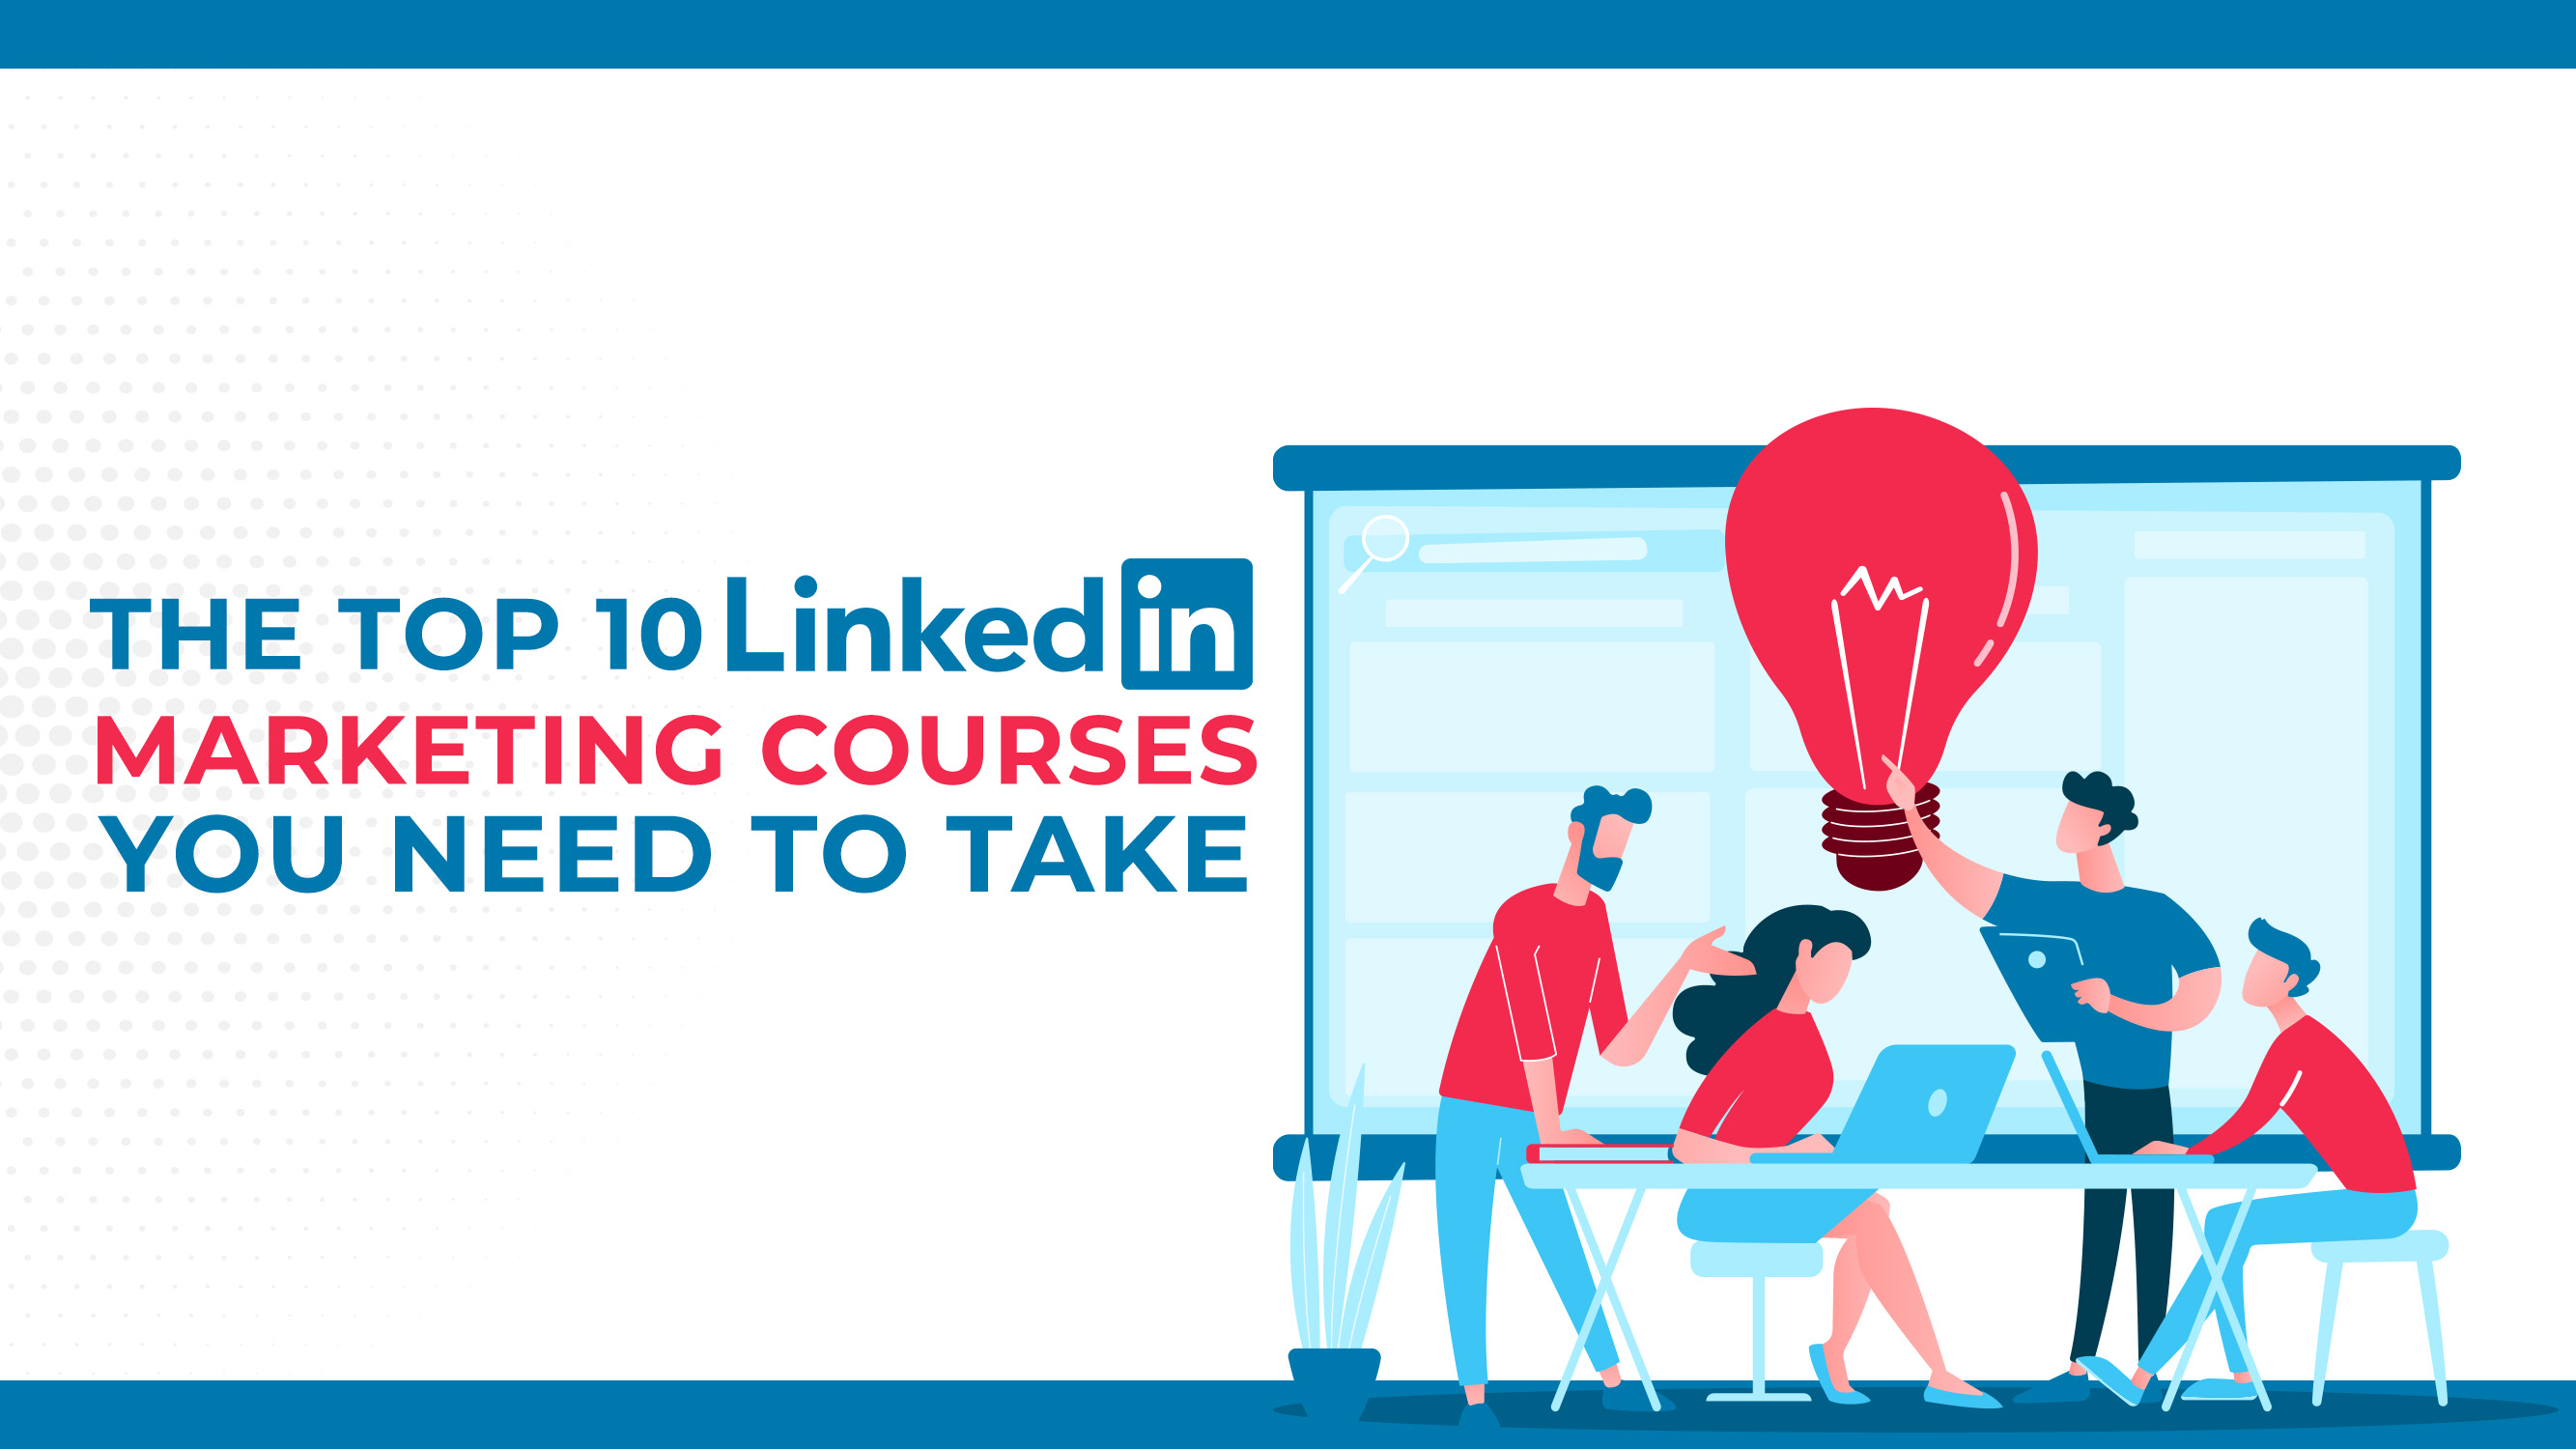 The Top 10 LinkedIn Marketing Courses You Need To Take